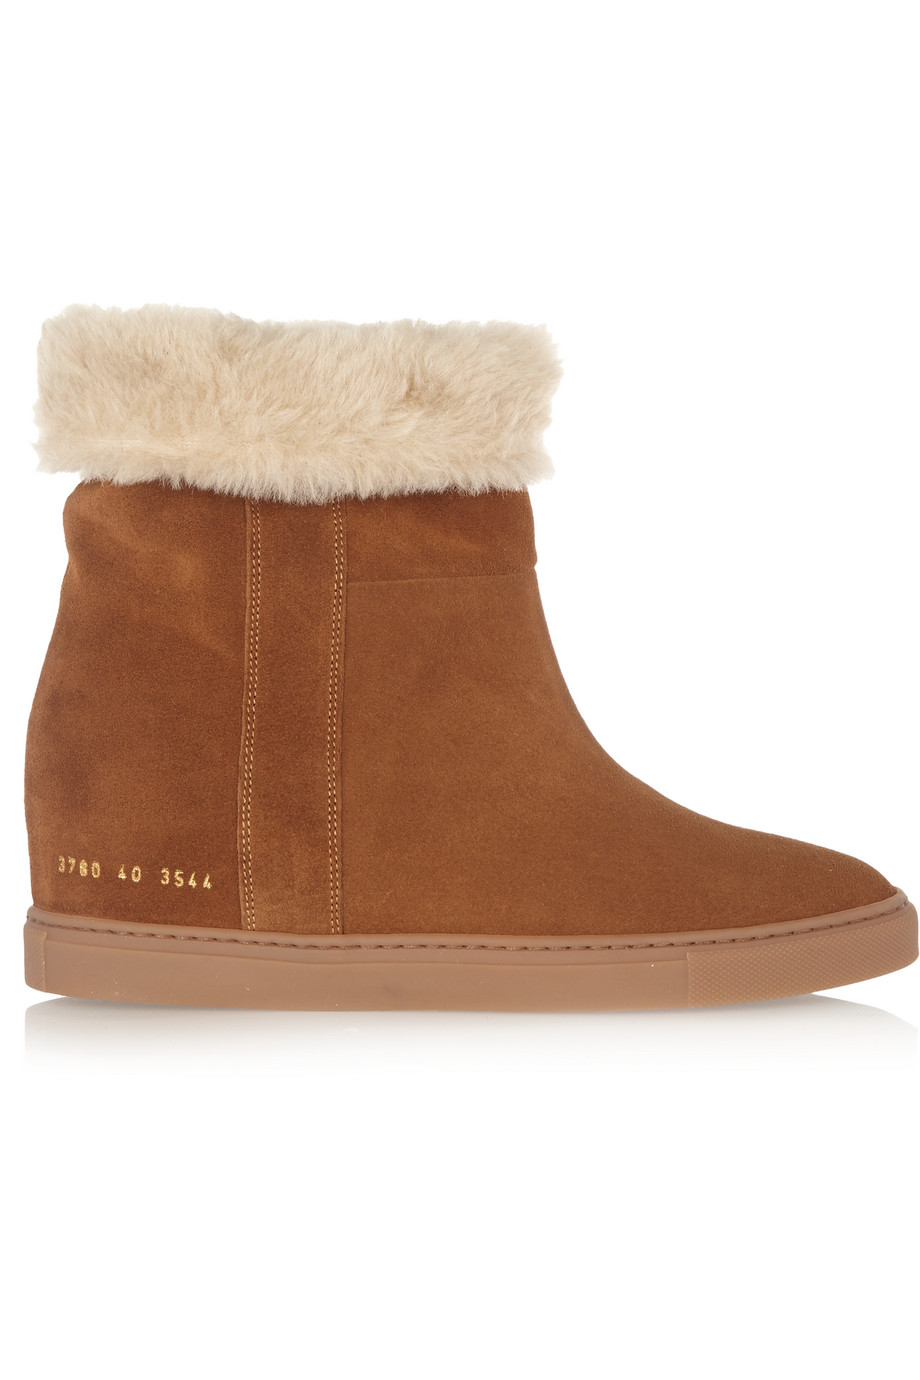 Common Projects Faux Shearling-Lined Suede Wedge Ankle Boots, Tan, Women's US Size: 9.5, Size: 40